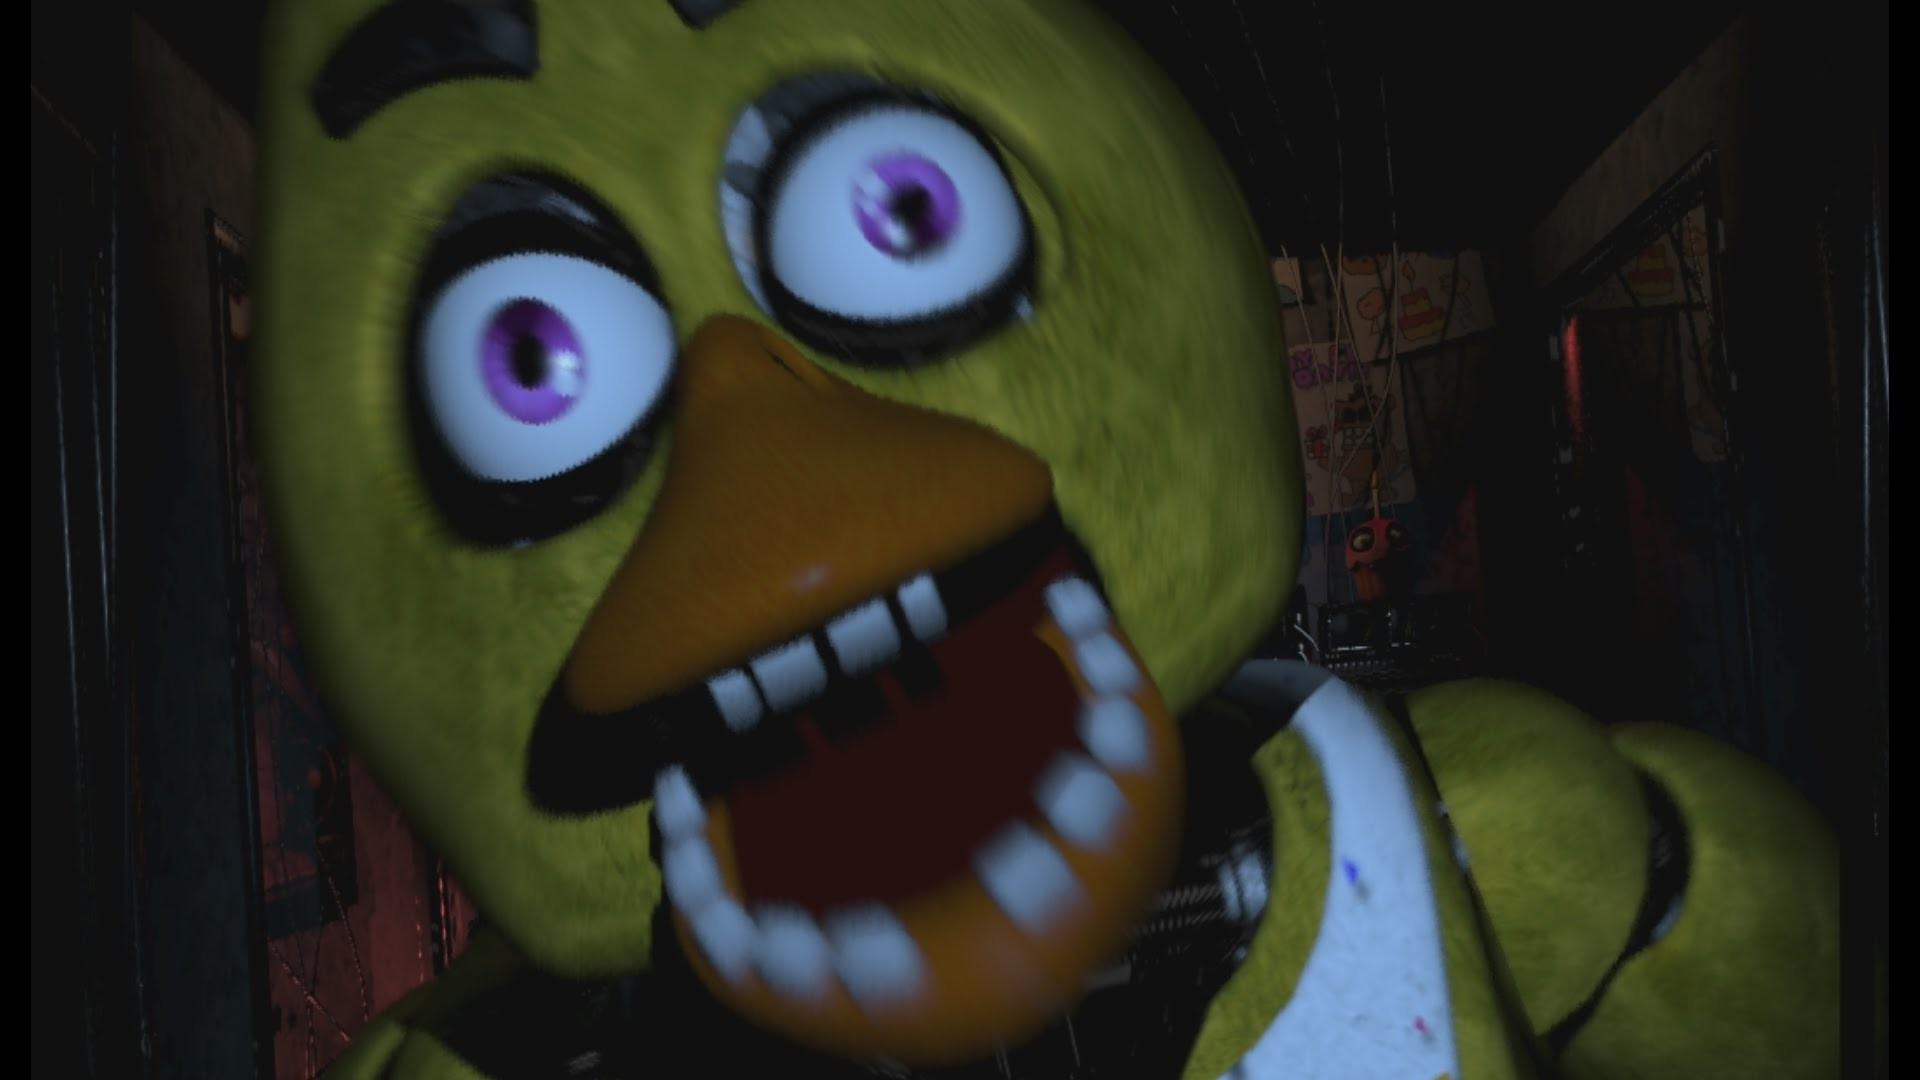 1920x1080 WORST JUMPSCARE I'VE EVER HAD - Five Nights at Freddy's - Part ...